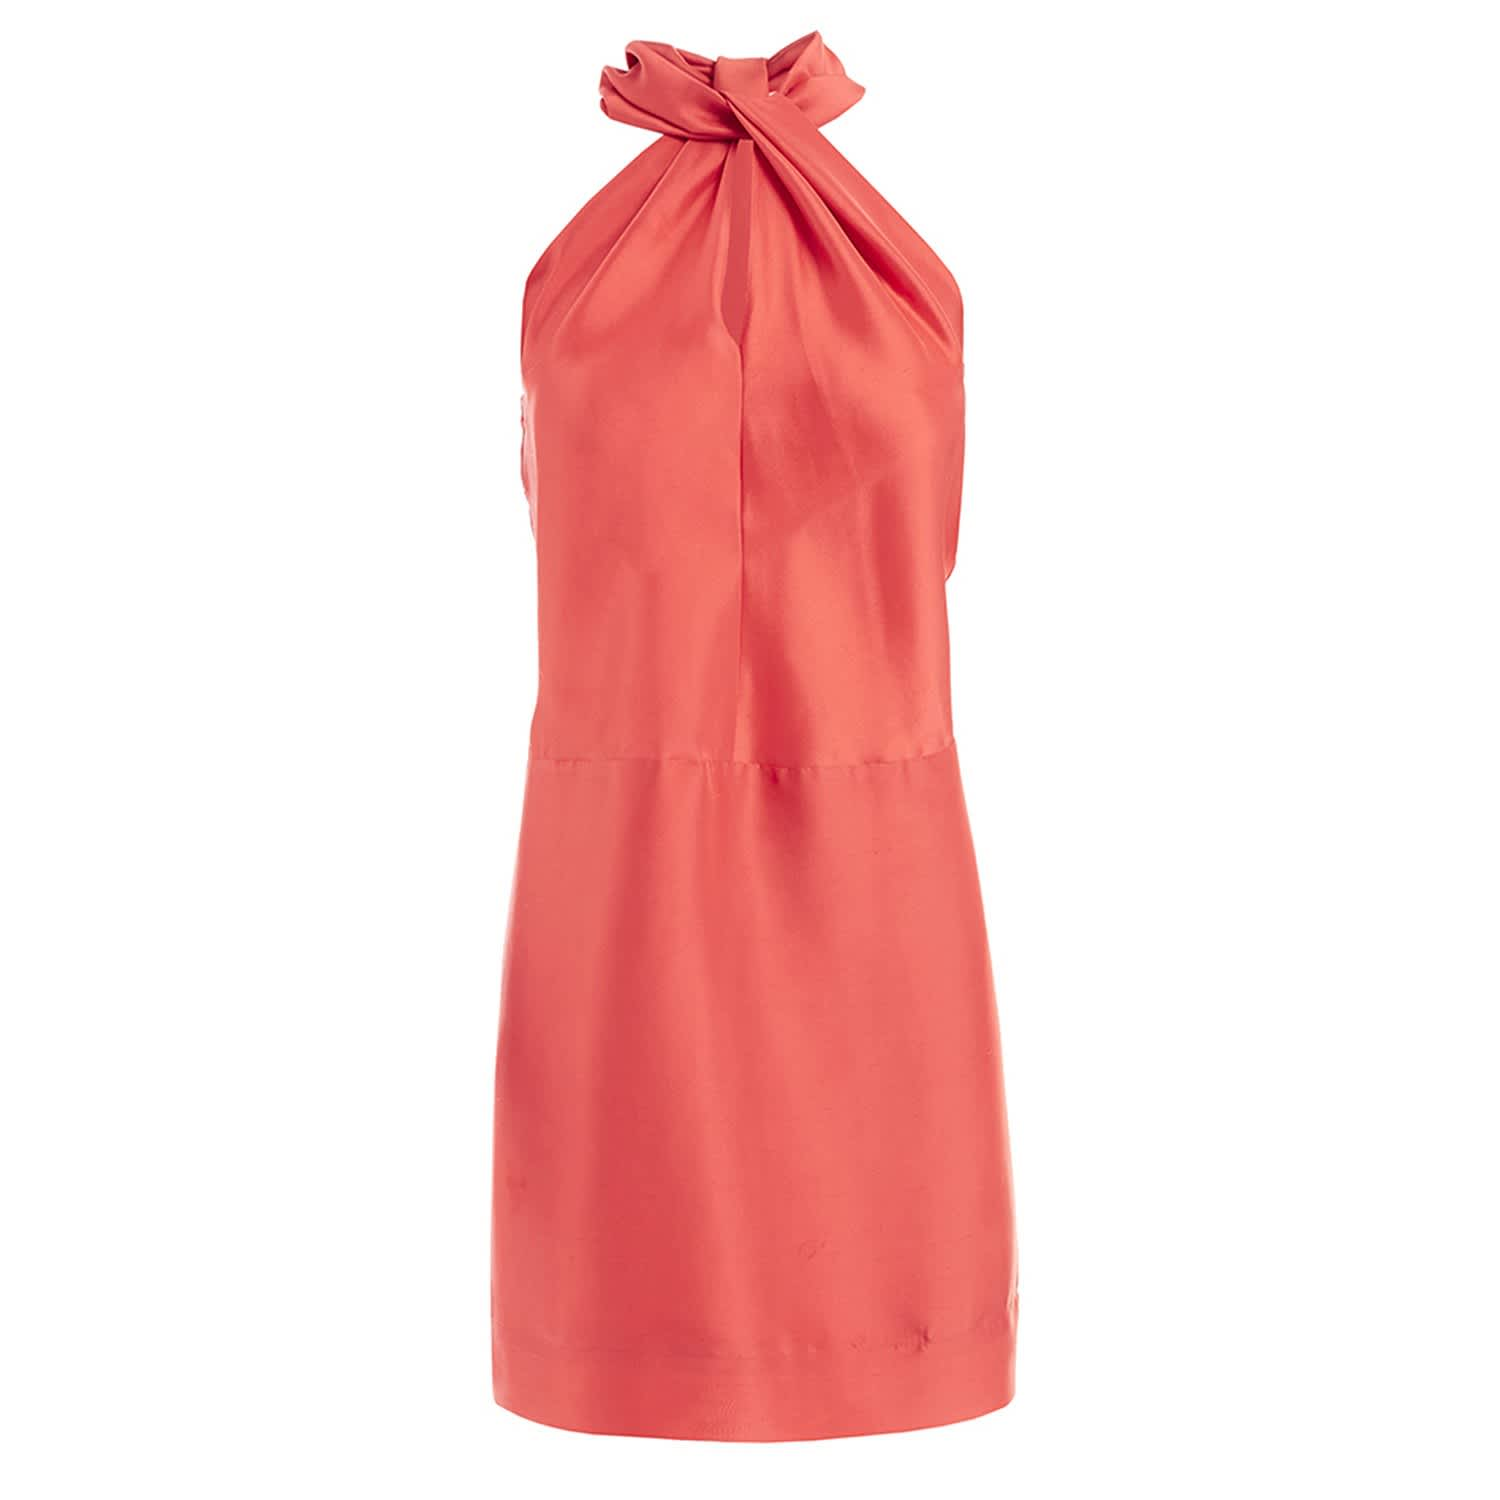 70e27ecaf3c94 Oona Coral Silk Halterneck Mini Dress image